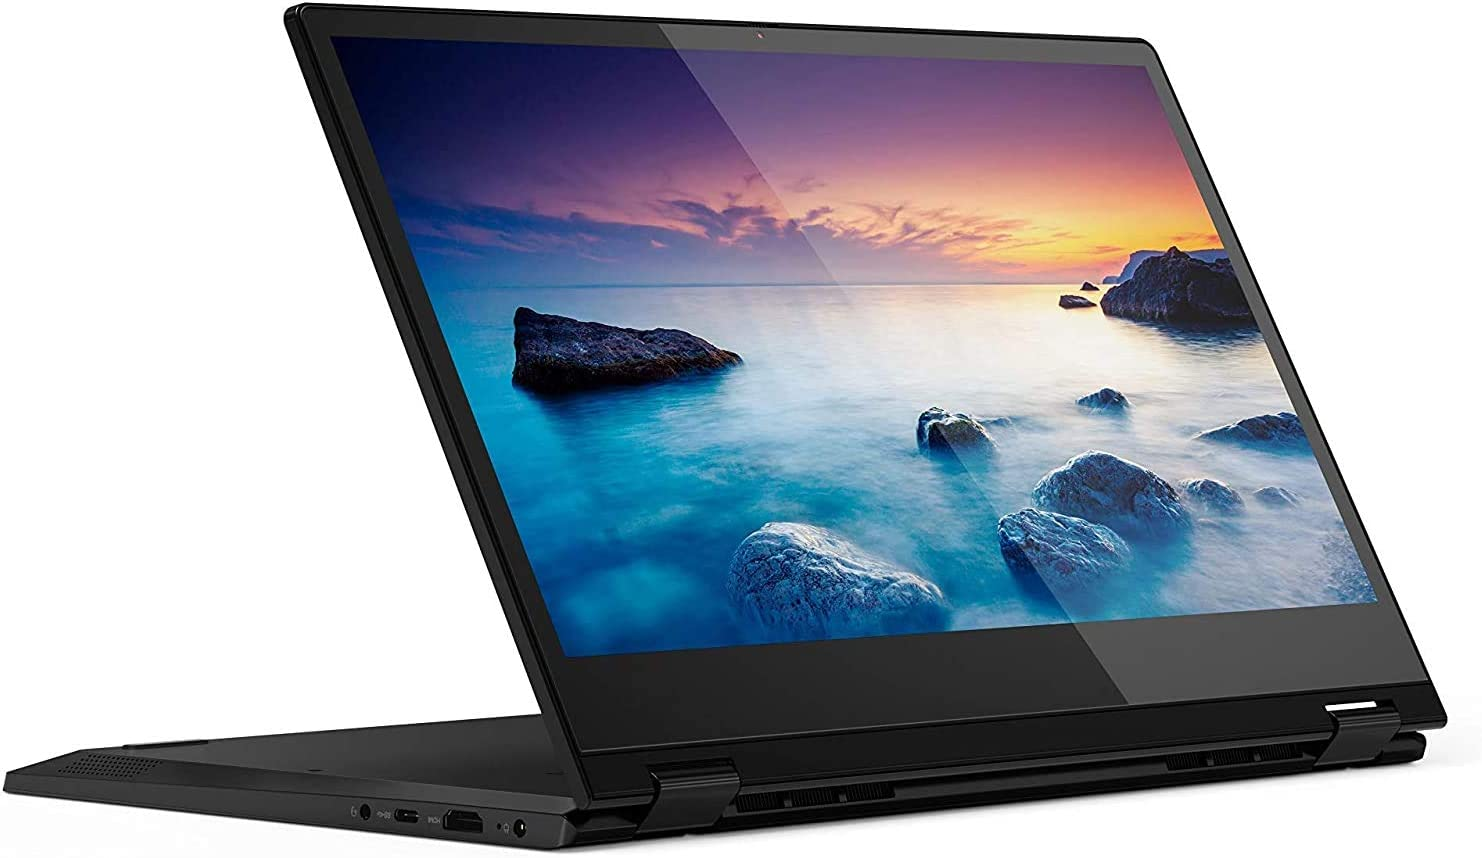 Lenovo 2-in-1 Convertible Laptop, 14inch FHD (1920X 1080) Touchscreen, Intel Pentium Gold 5405U 2.30GHz, 4GB DDR4 RAM, 128GB NVMe SSD, WiFi, HDMI, Windows 10- (Renewed)